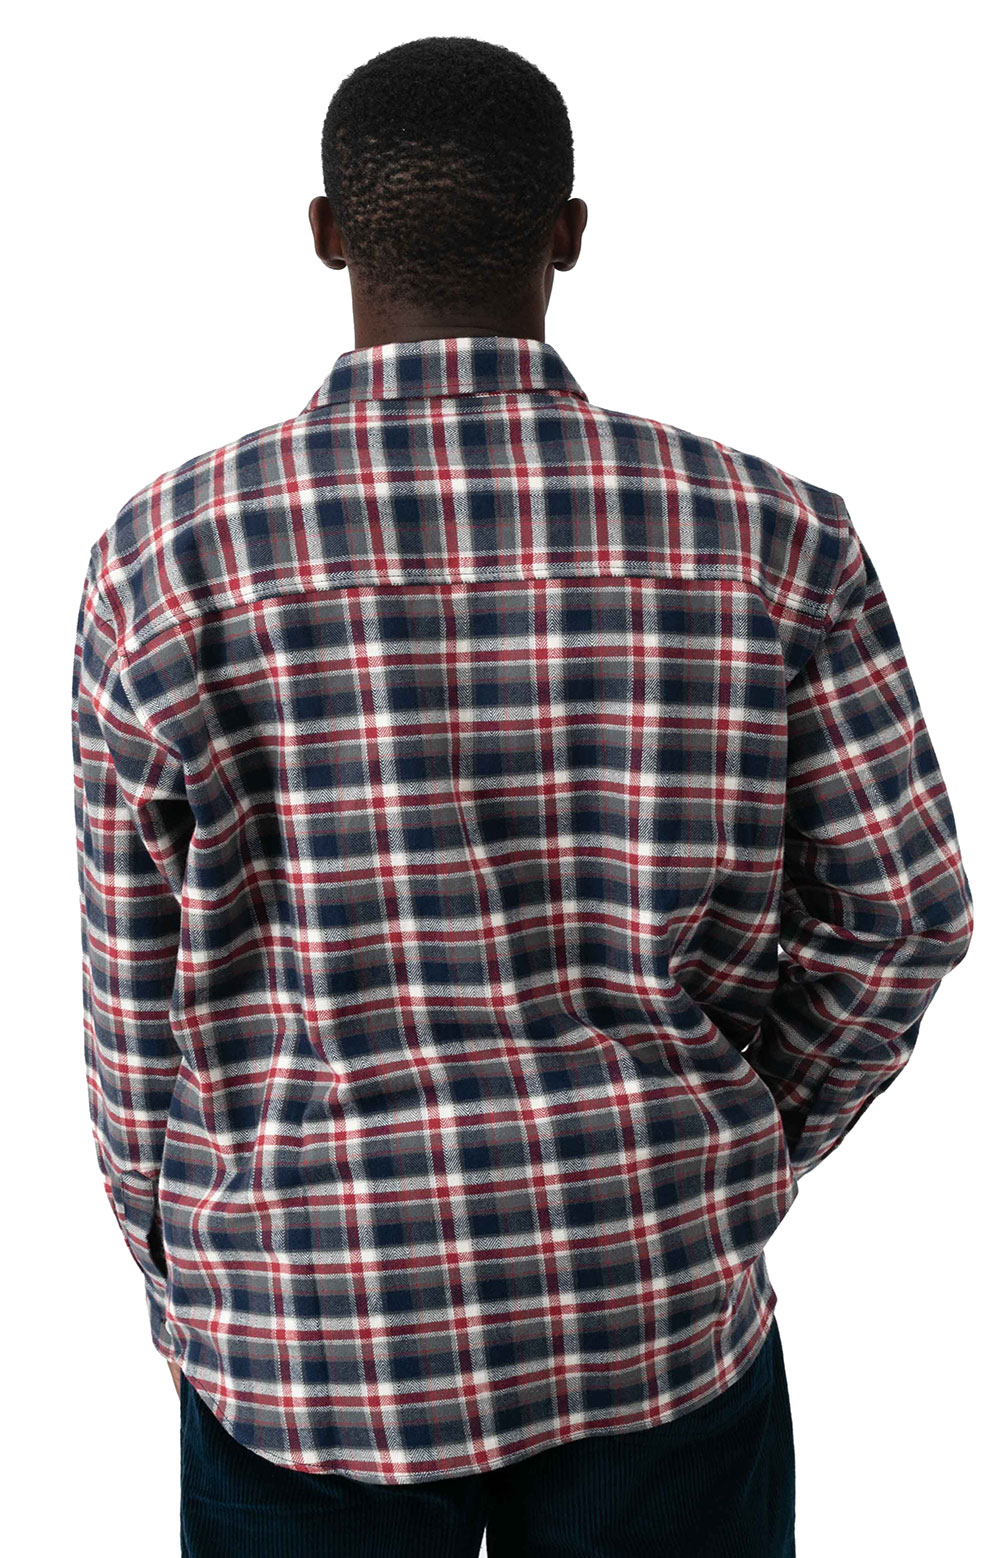 Flannel Button-Up Shirt - Navy/Red 3